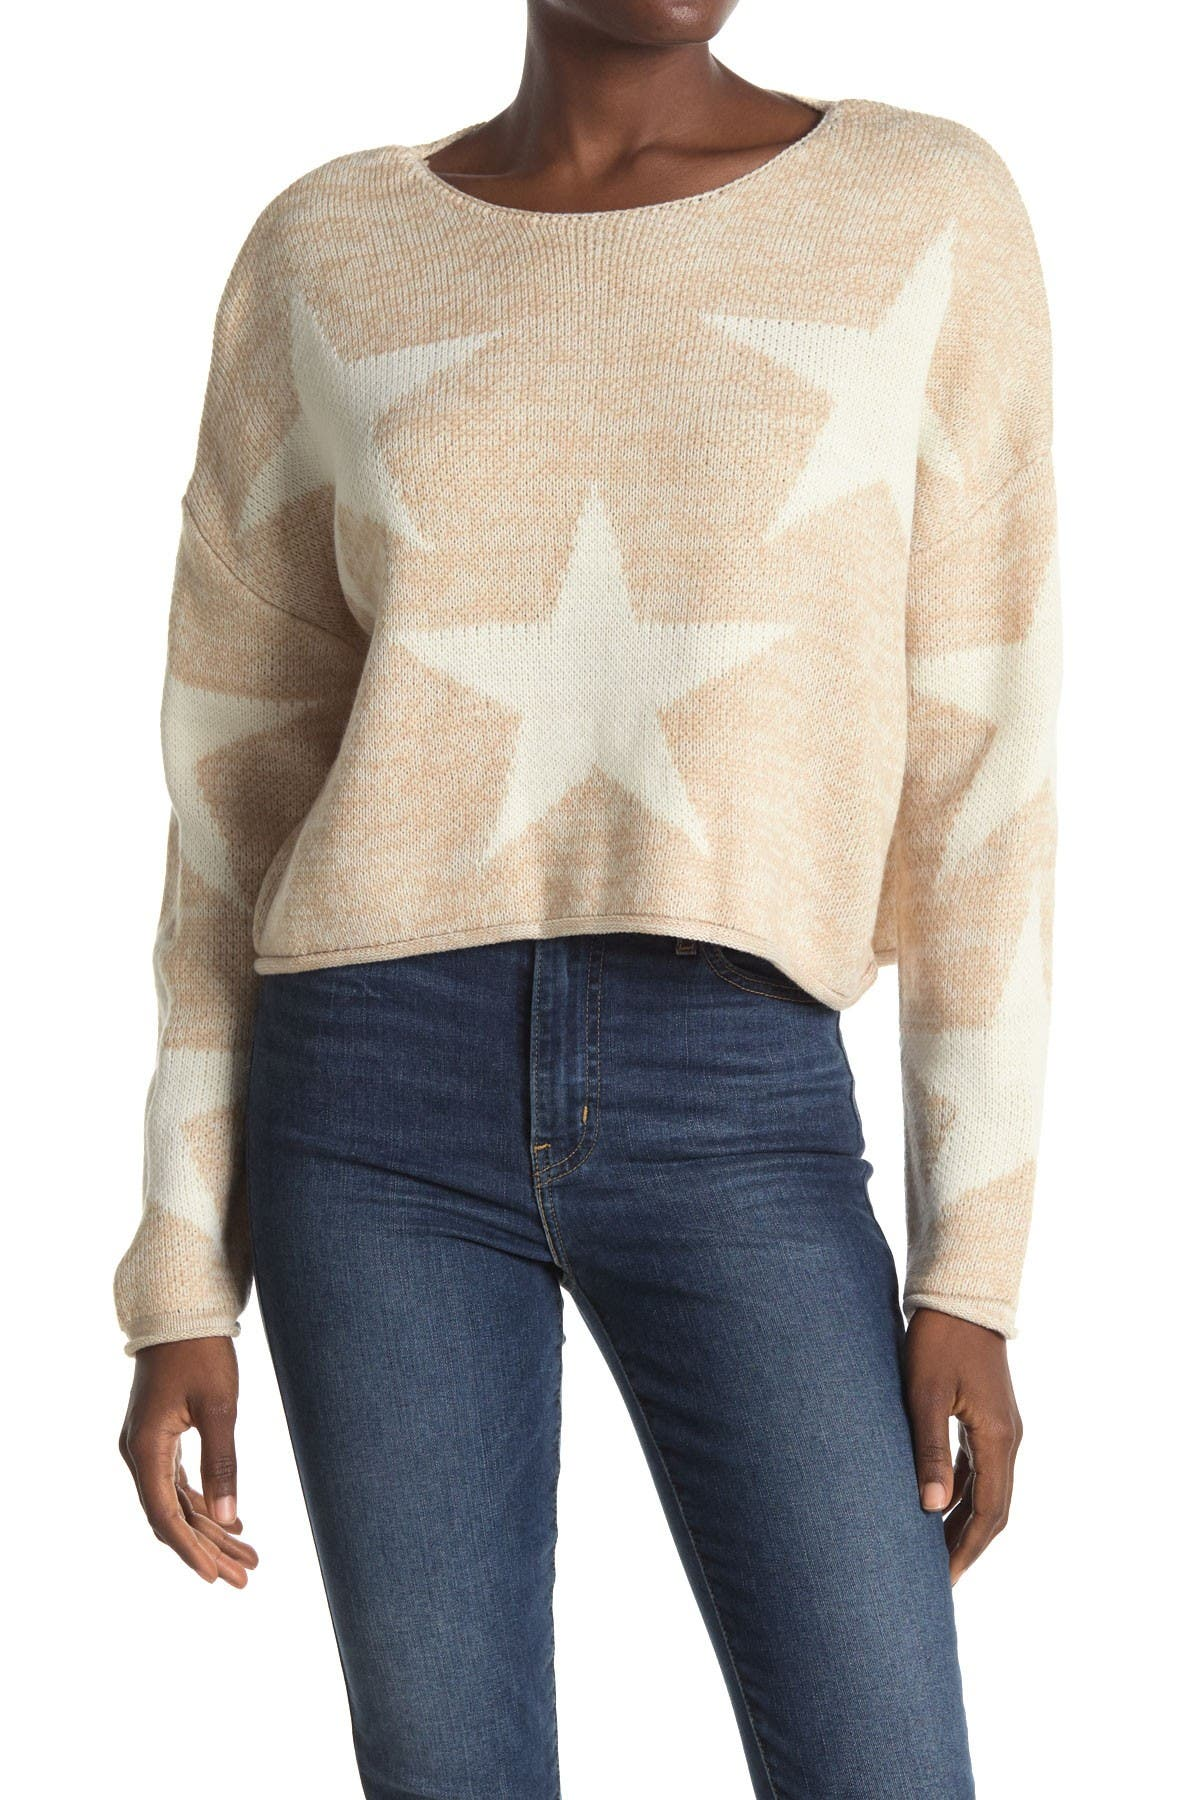 Image of Cotton Emporium Contrast Star Knit Sweater